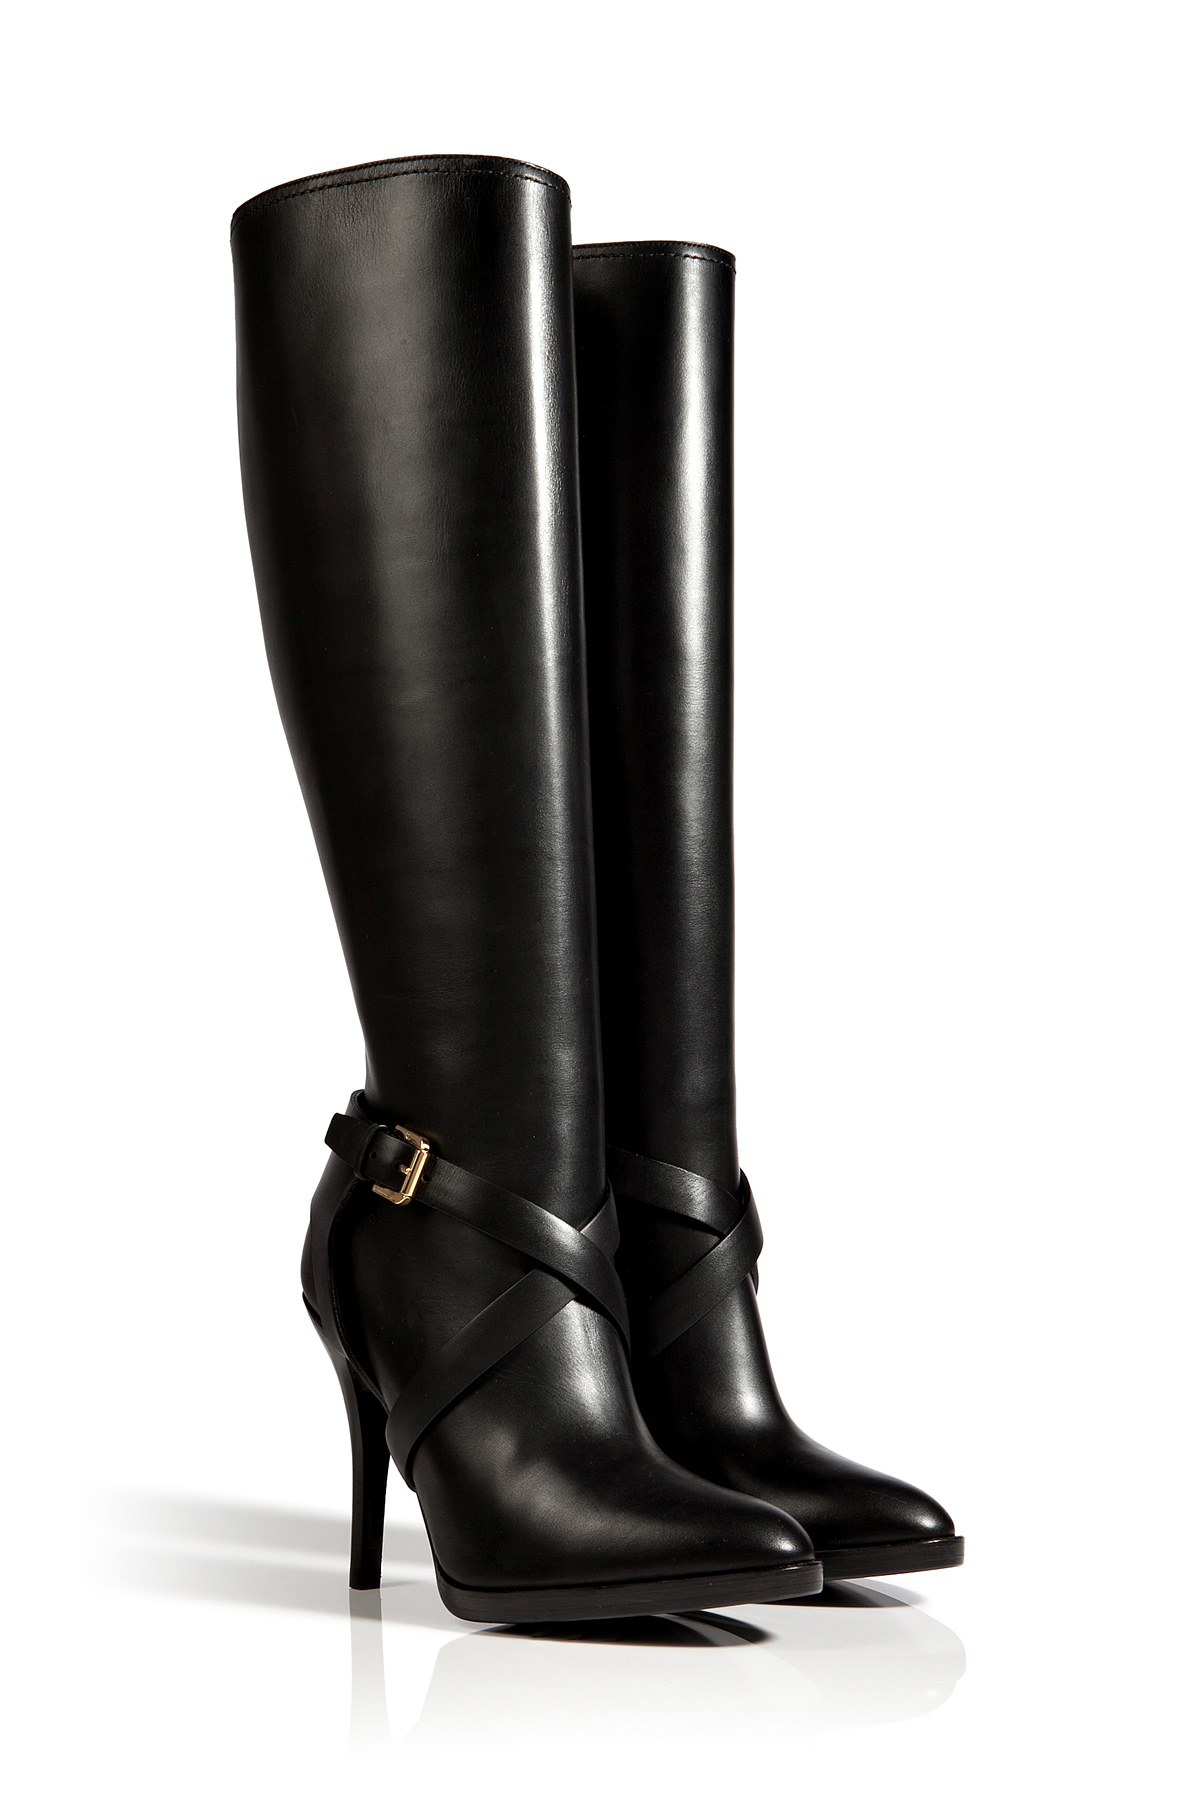 Ralph Lauren Leather Buckle Knee-High Boots clearance get to buy Ce0975CX